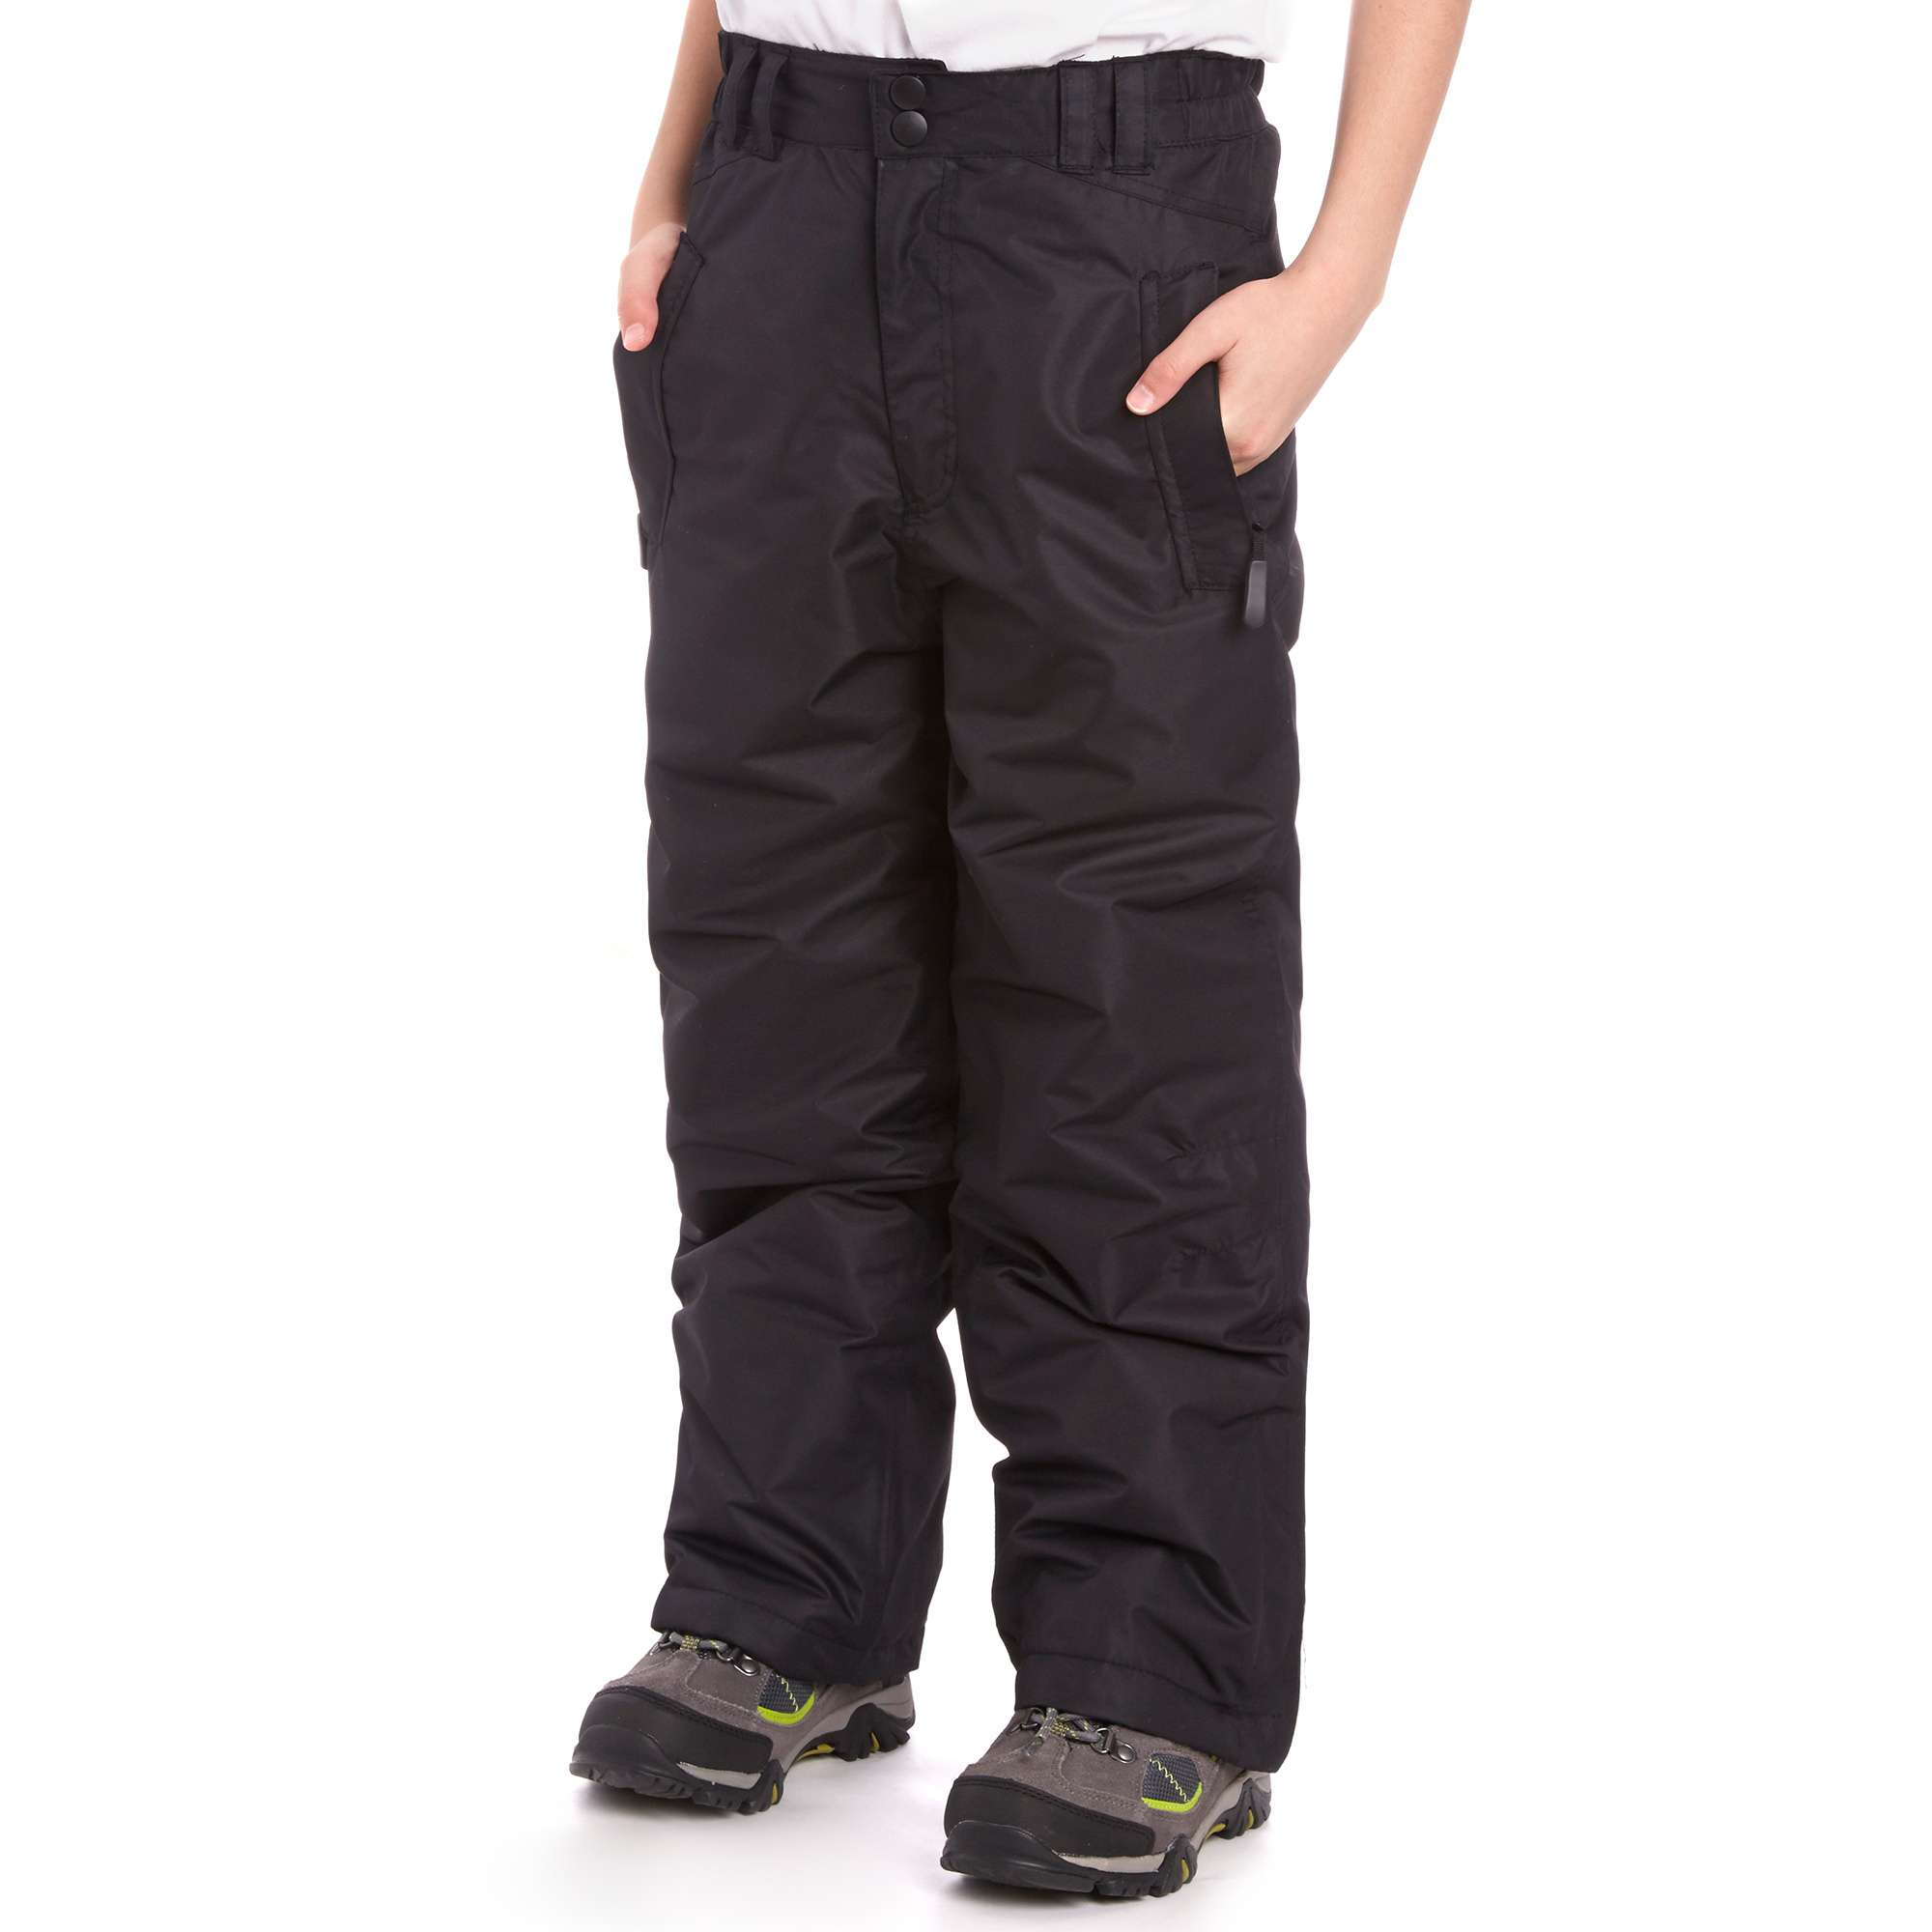 ALPINE Boys' Ski Pants